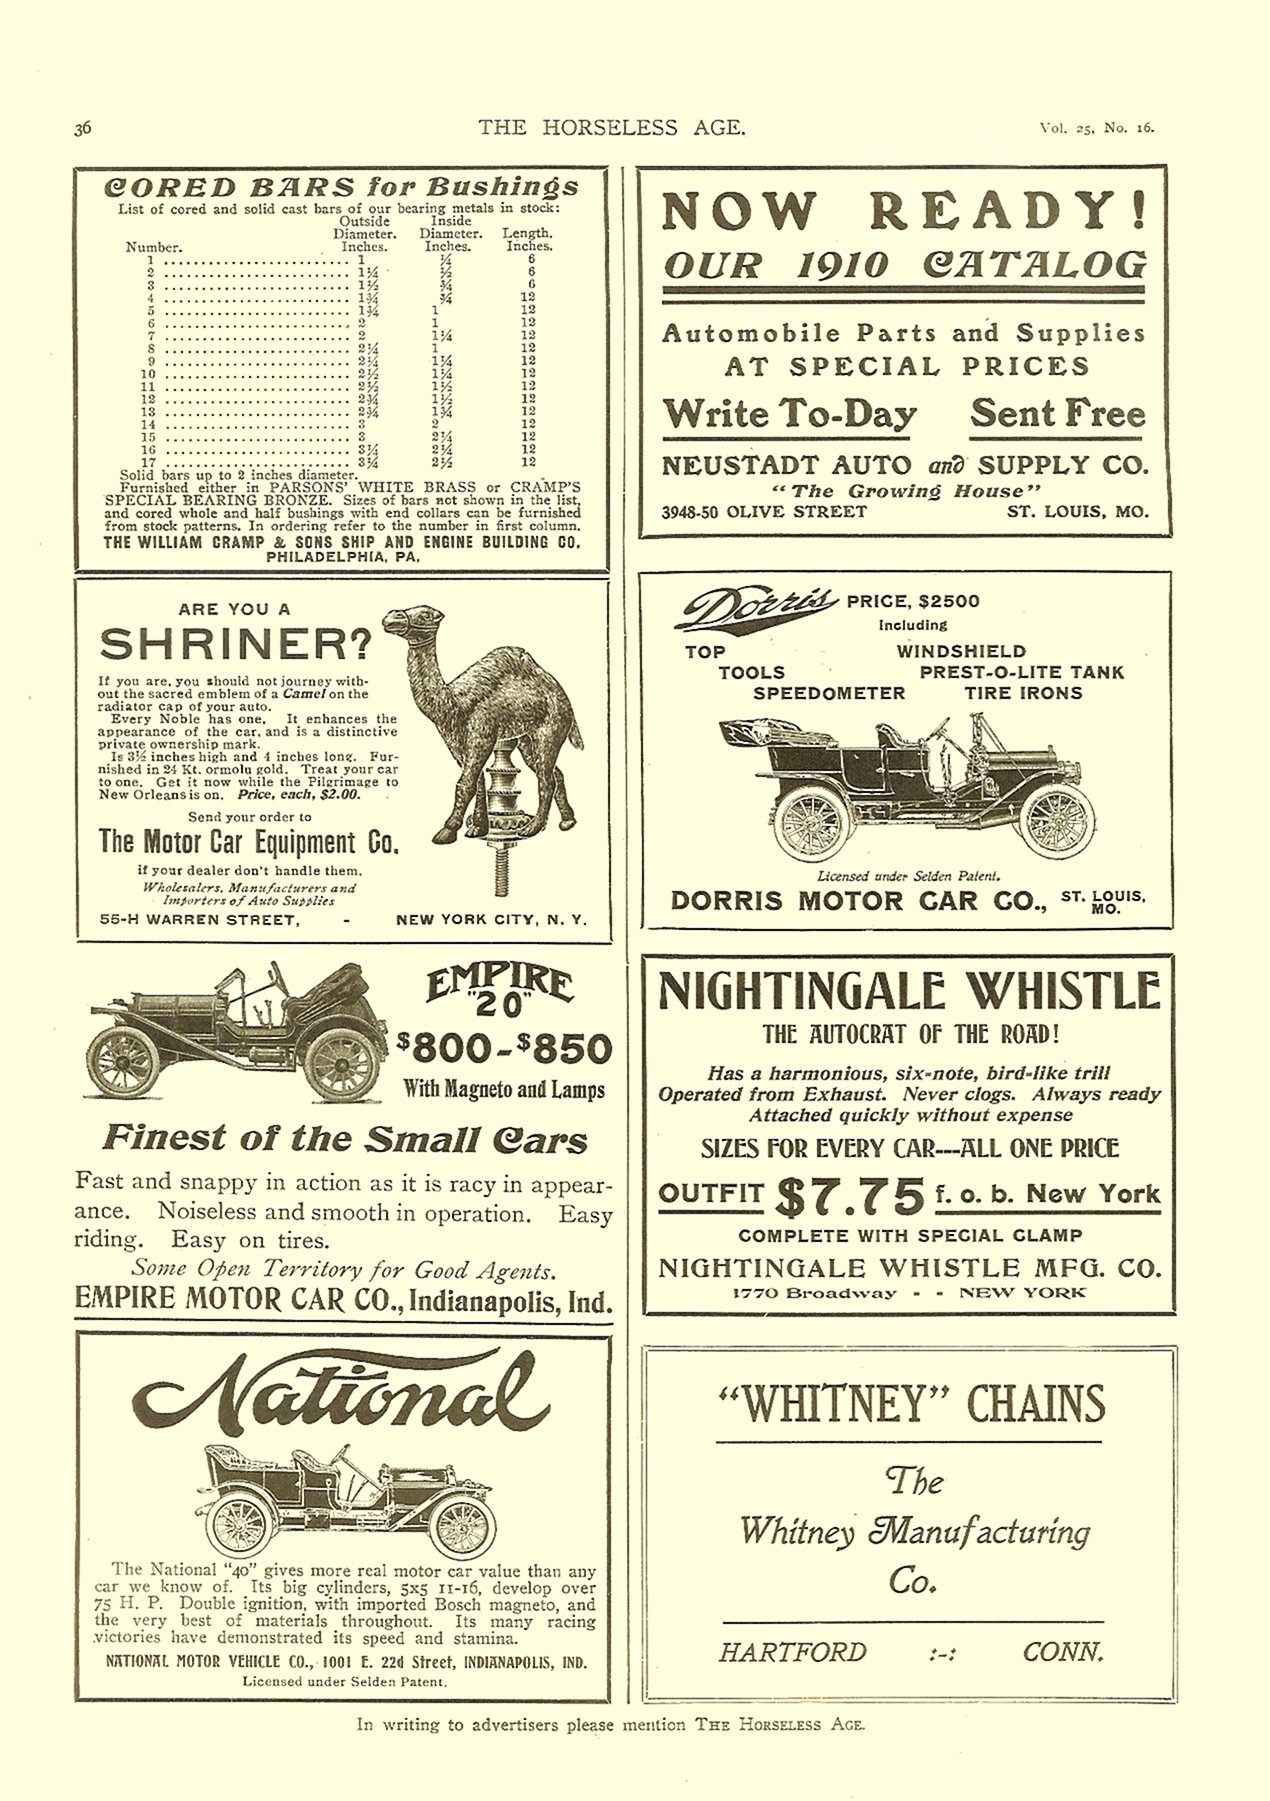 1910 4 20 National THE HORSELESS AGE April 20, 1910 Vol. 25 No. 16 9″x12″ page 36